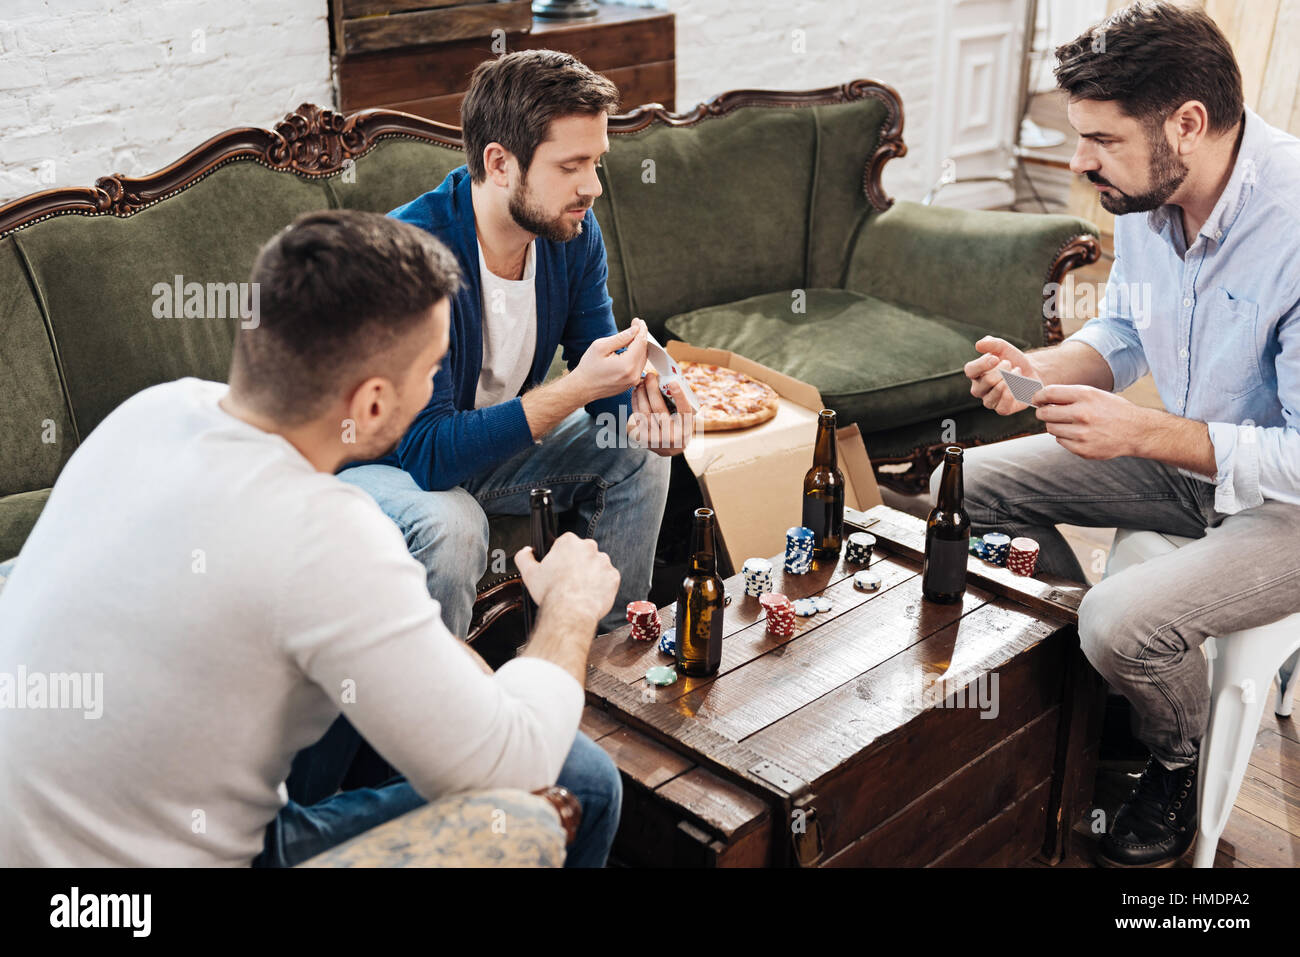 Serious handsome man shuffling cards - Stock Image